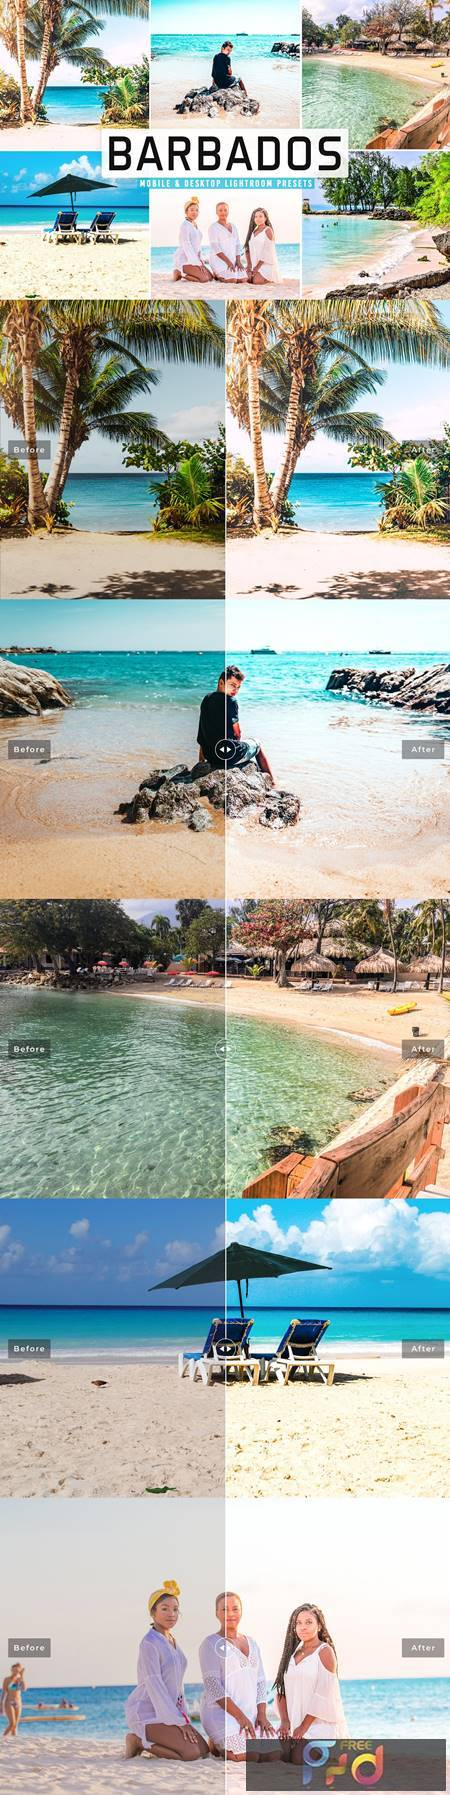 Barbados Pro Lightroom Presets 5498215 1